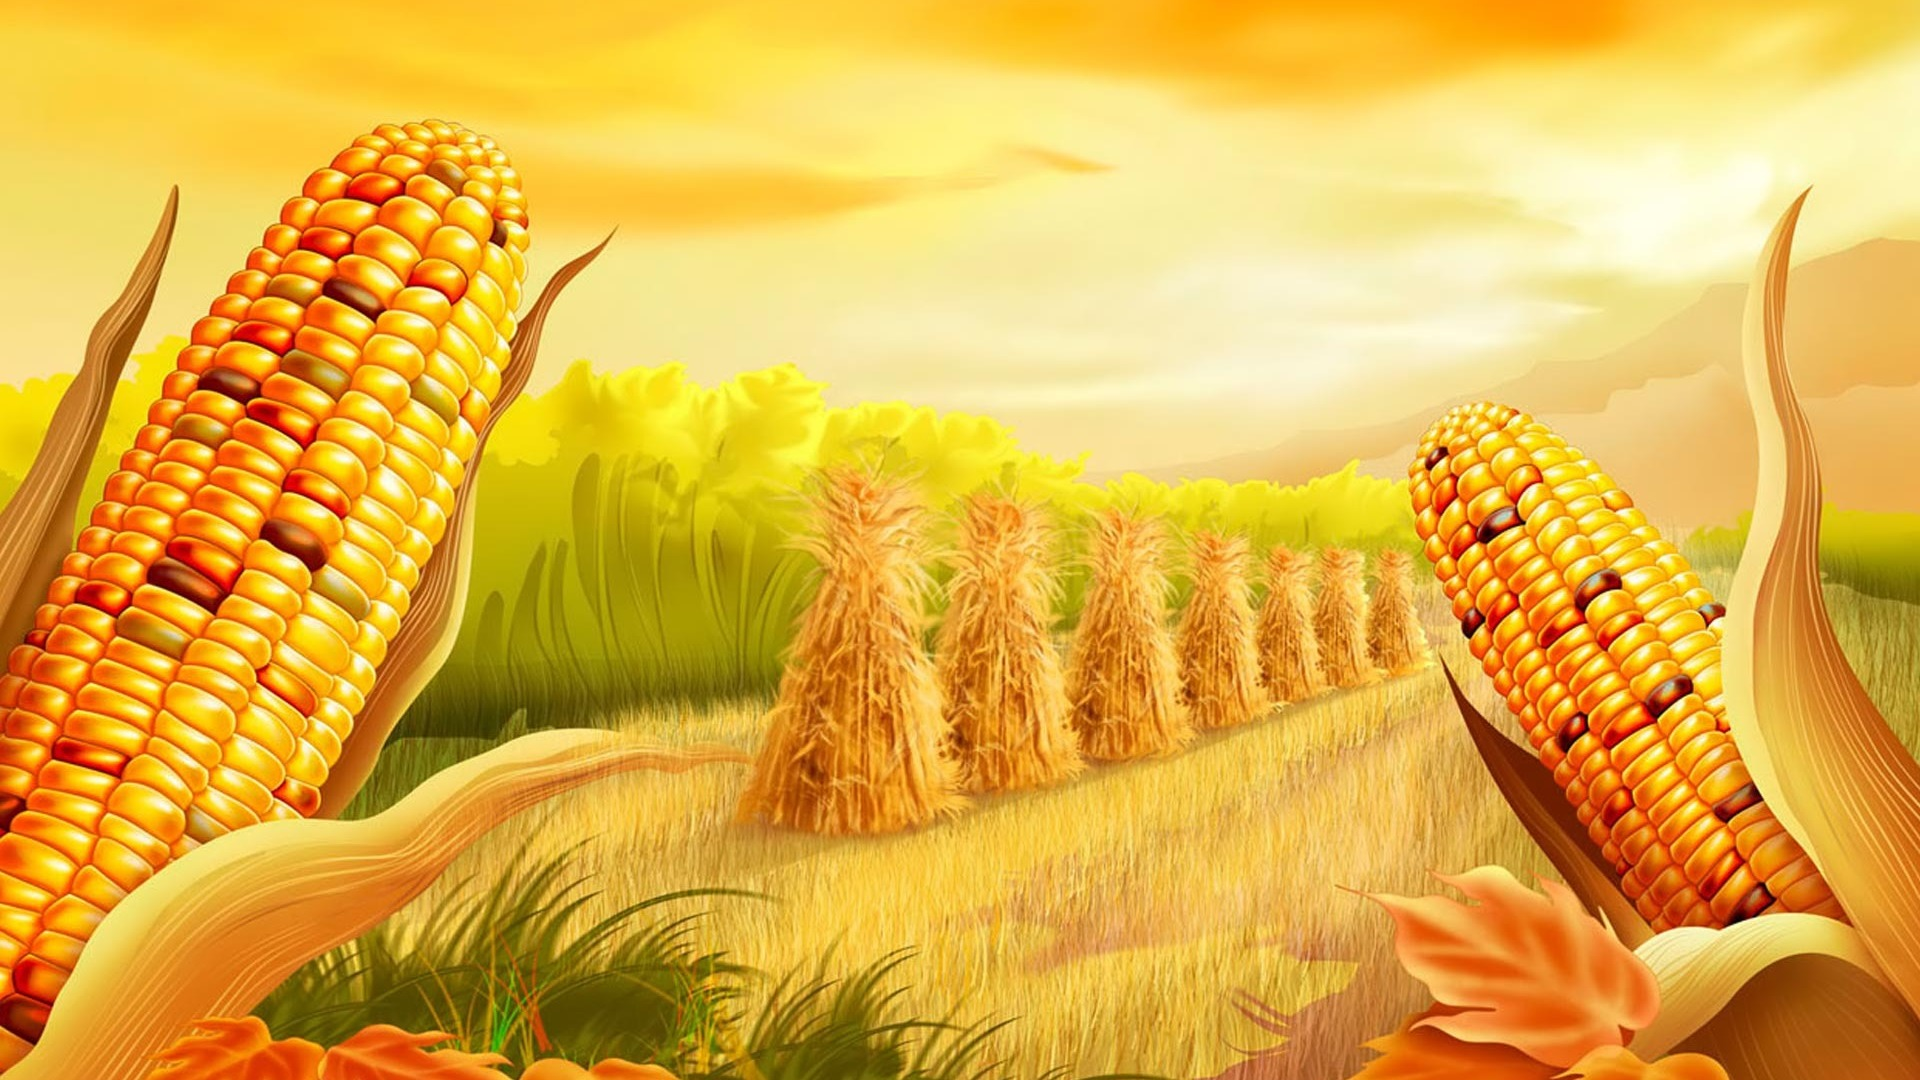 Corn Ready To Harvest Golden HD Wallpaper